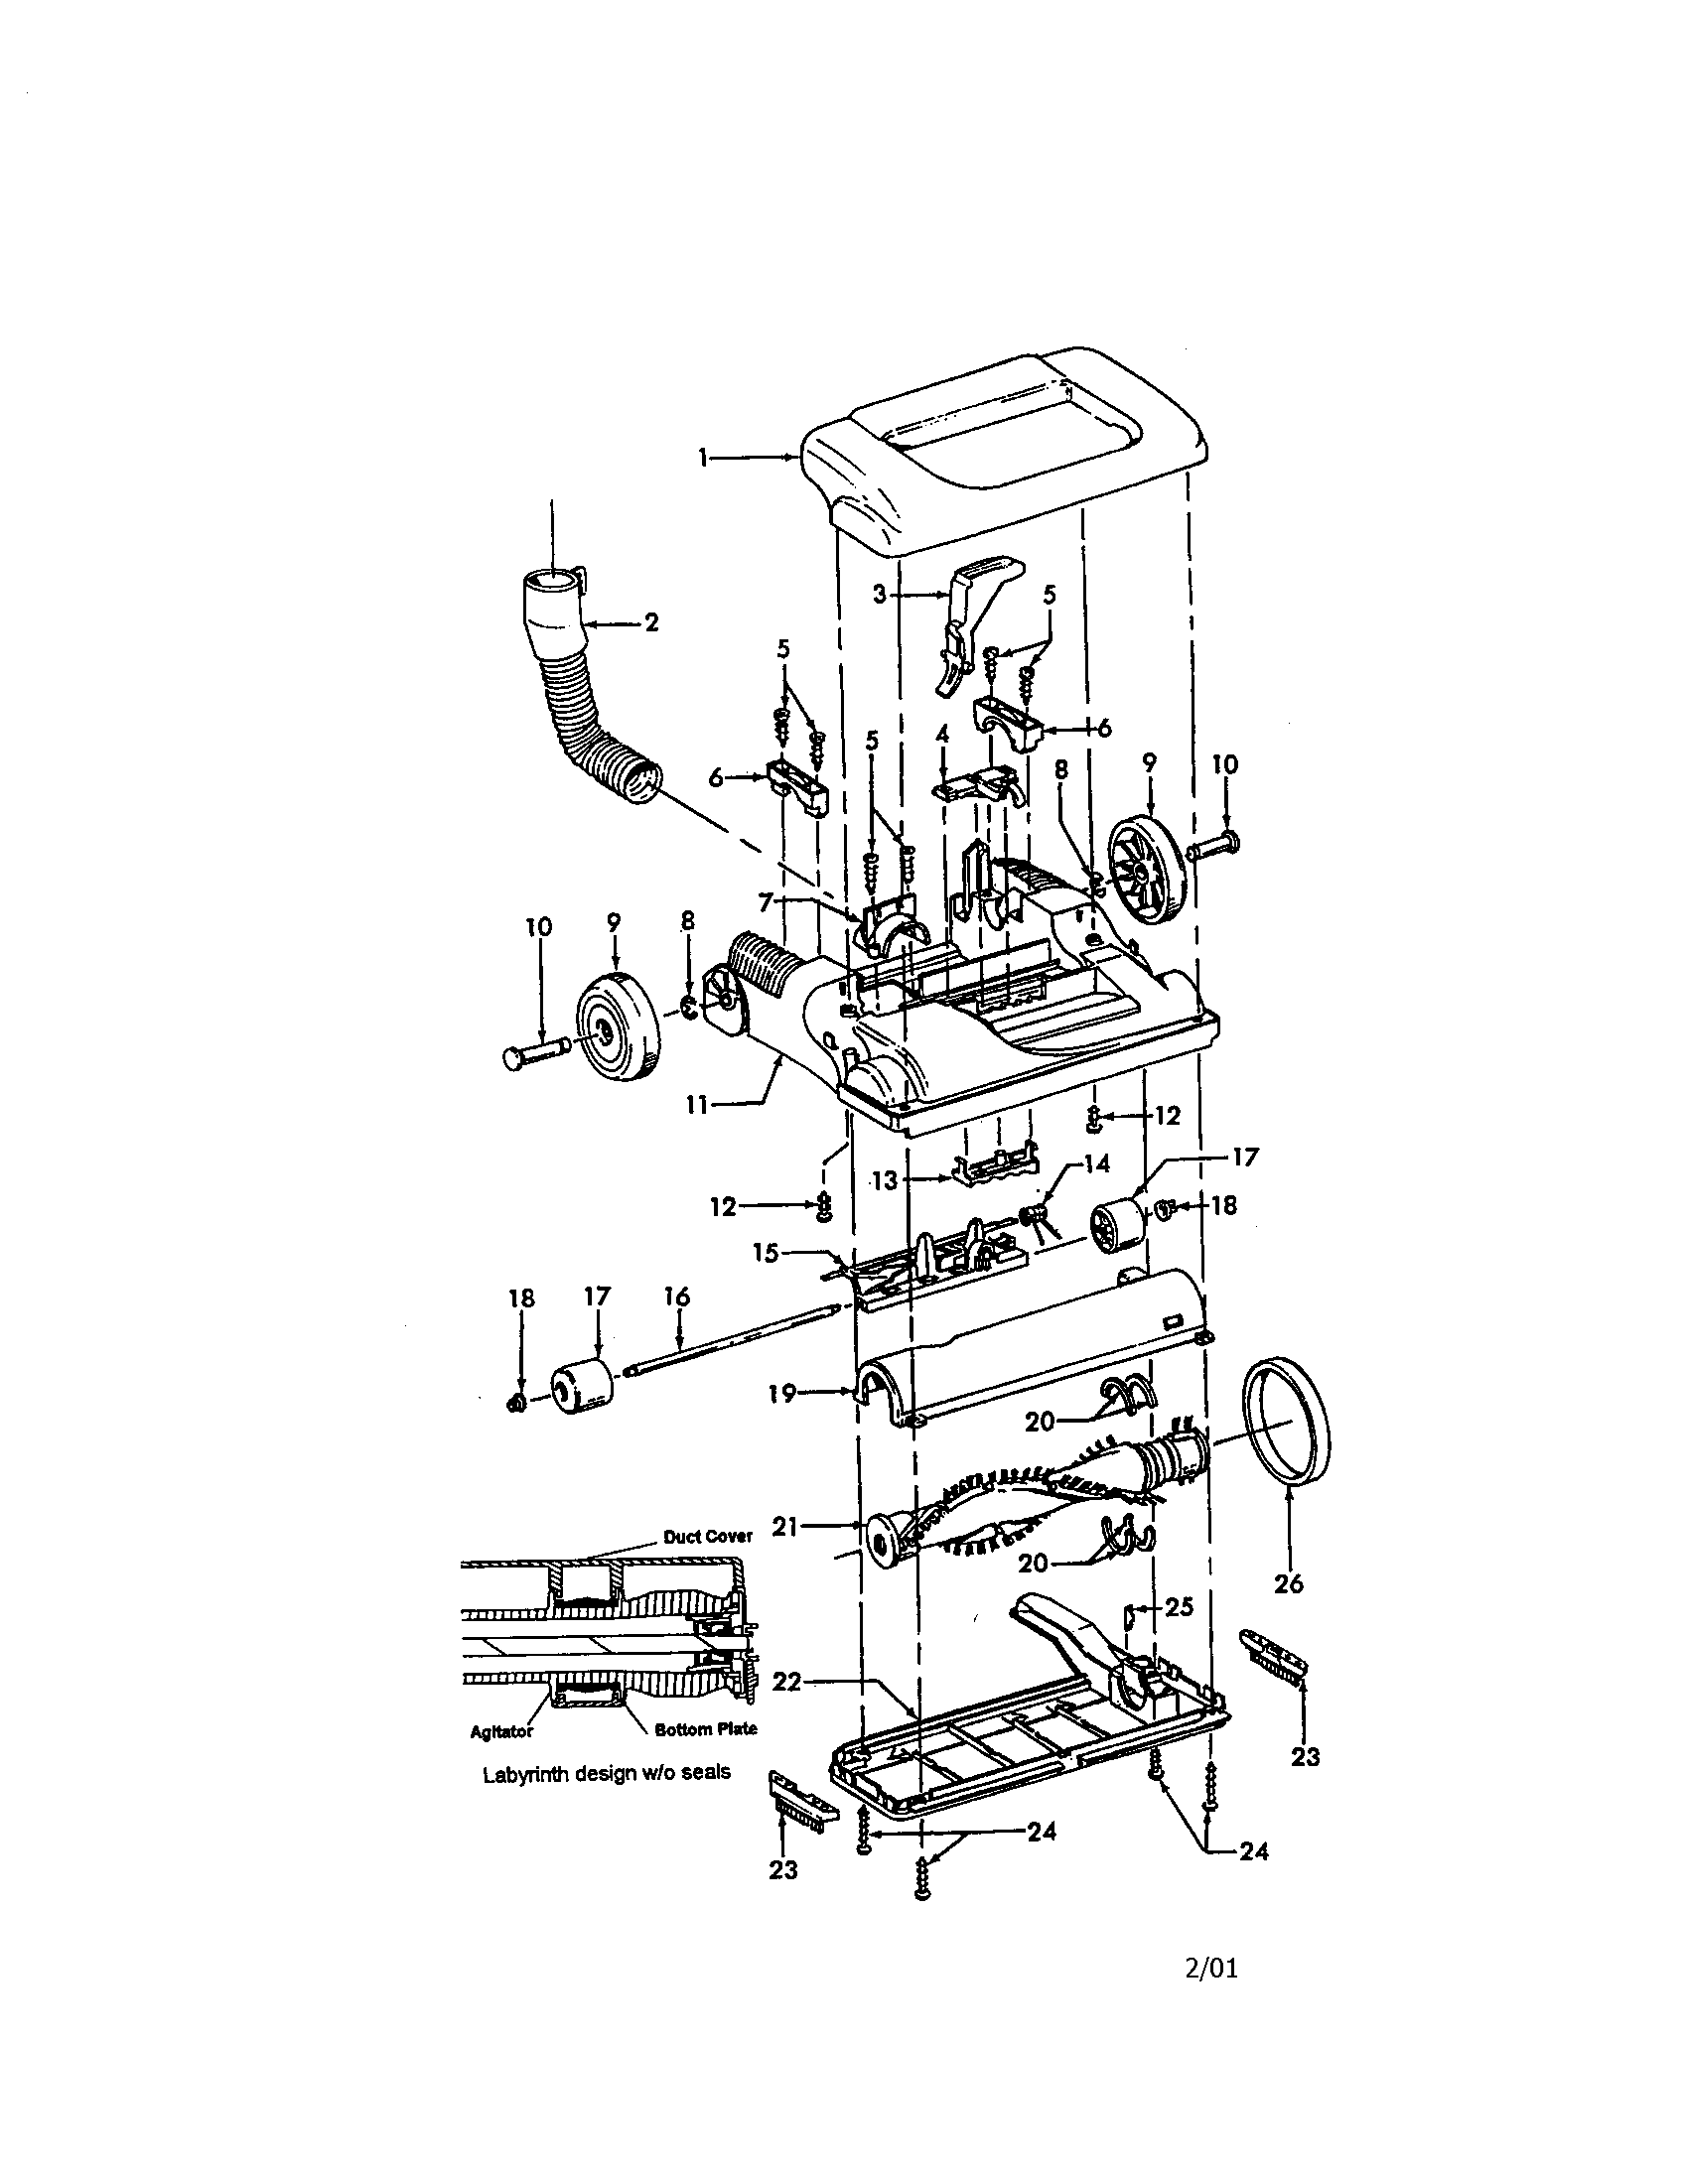 hight resolution of hoover windtunnel upright parts model u5443900 sears bissell vacuum hoover central vacuum wiring diagram